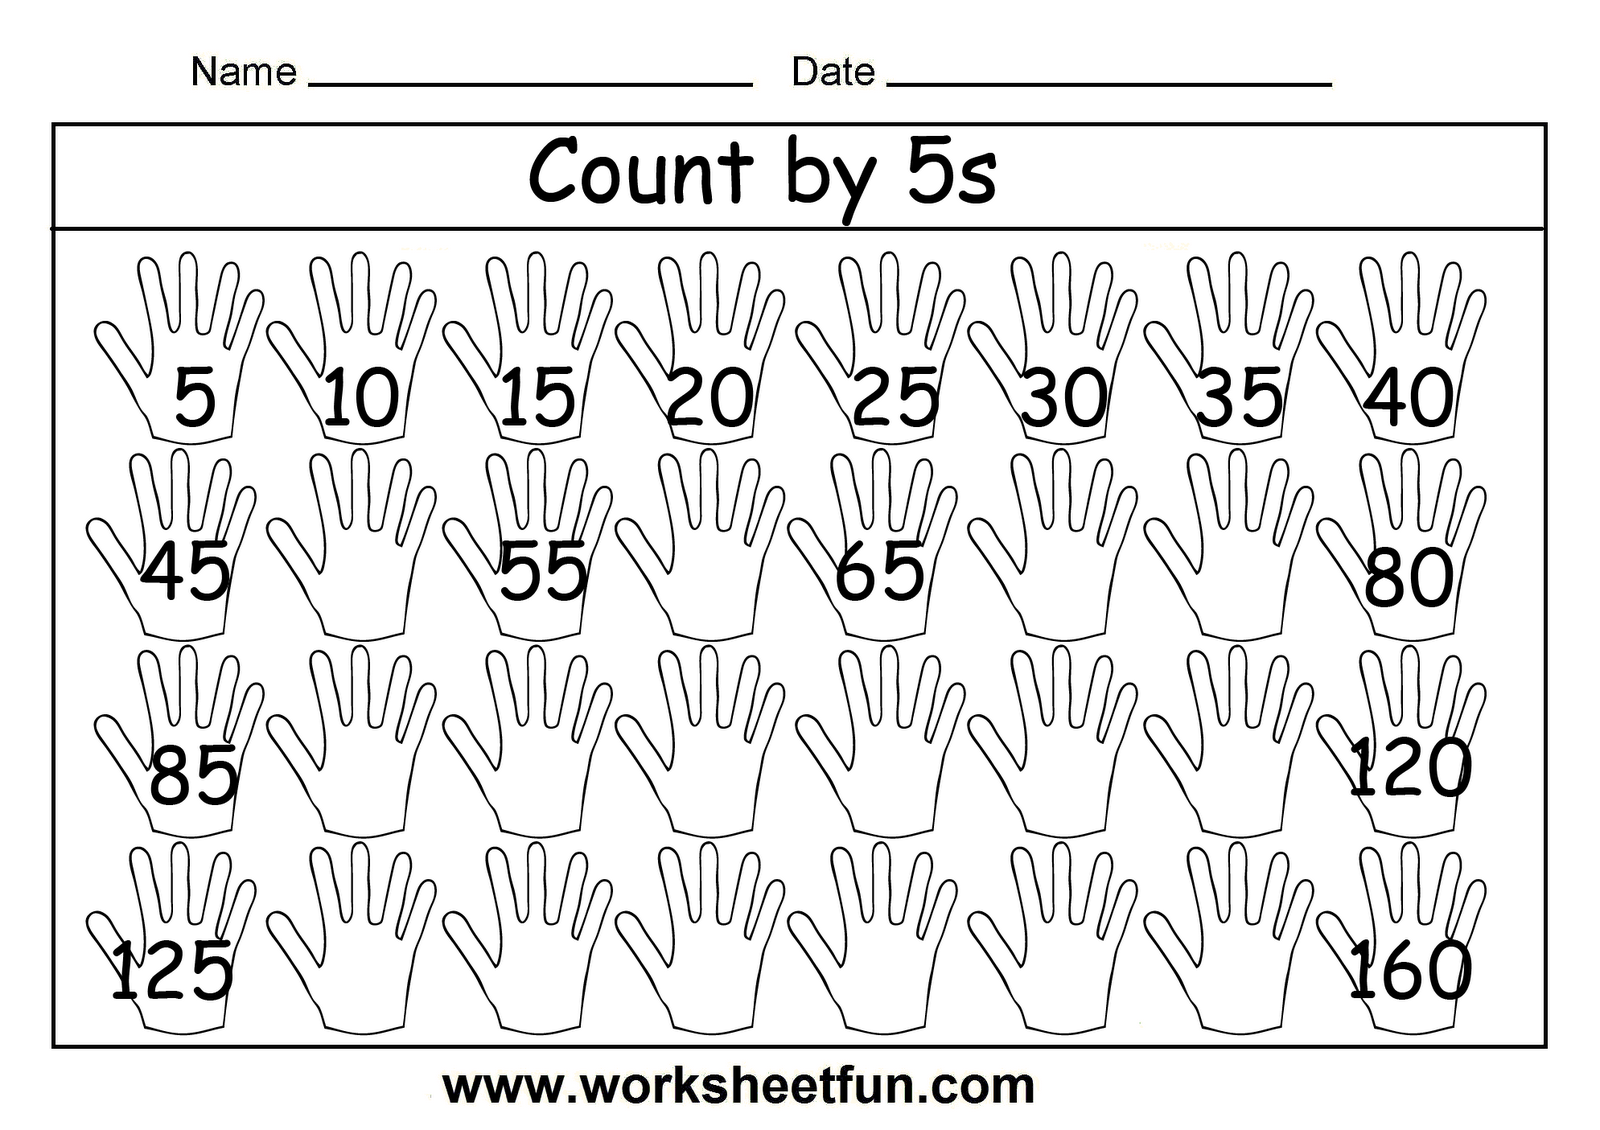 hight resolution of Worksheetfun - FREE PRINTABLE WORKSHEETS   Free printable math worksheets